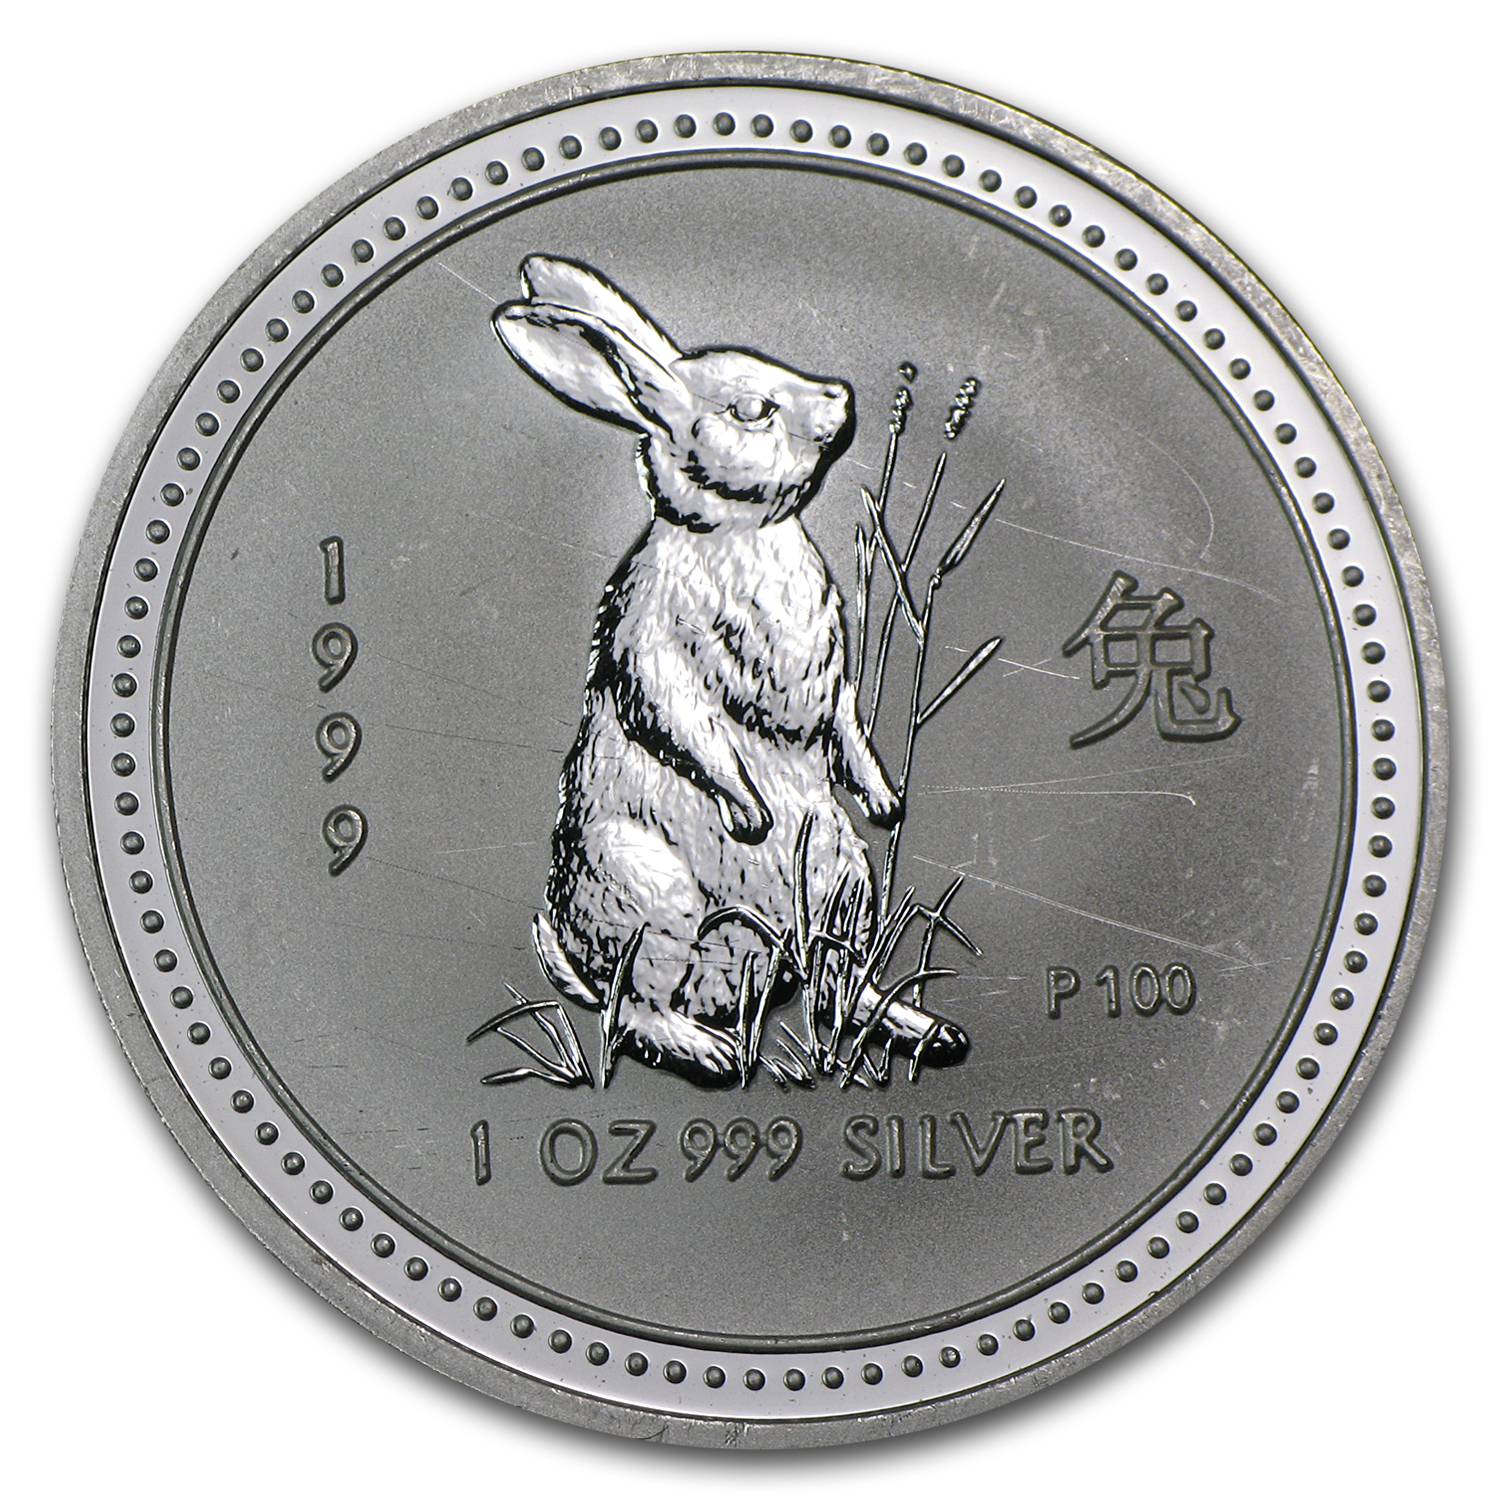 1999 1 oz Silver Lunar Year of the Rabbit (SI)(Light Abrasions)